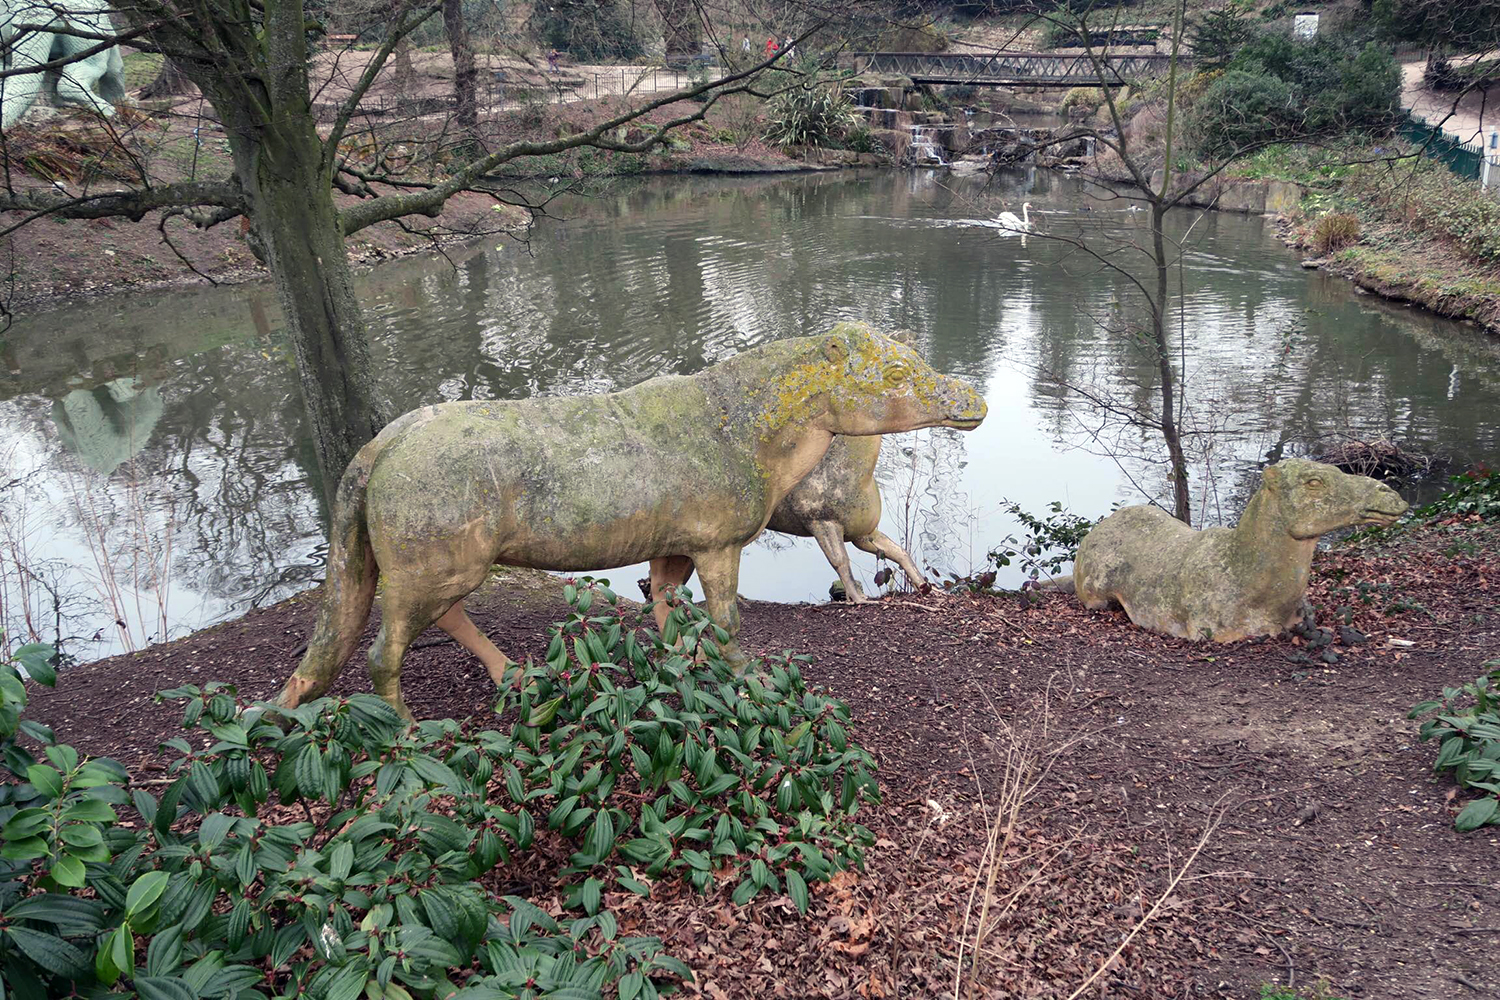 It may surprise you to hear that you will encounter dinosaurs on London's Green Chain Walk. In Crystal Palace, of all places.